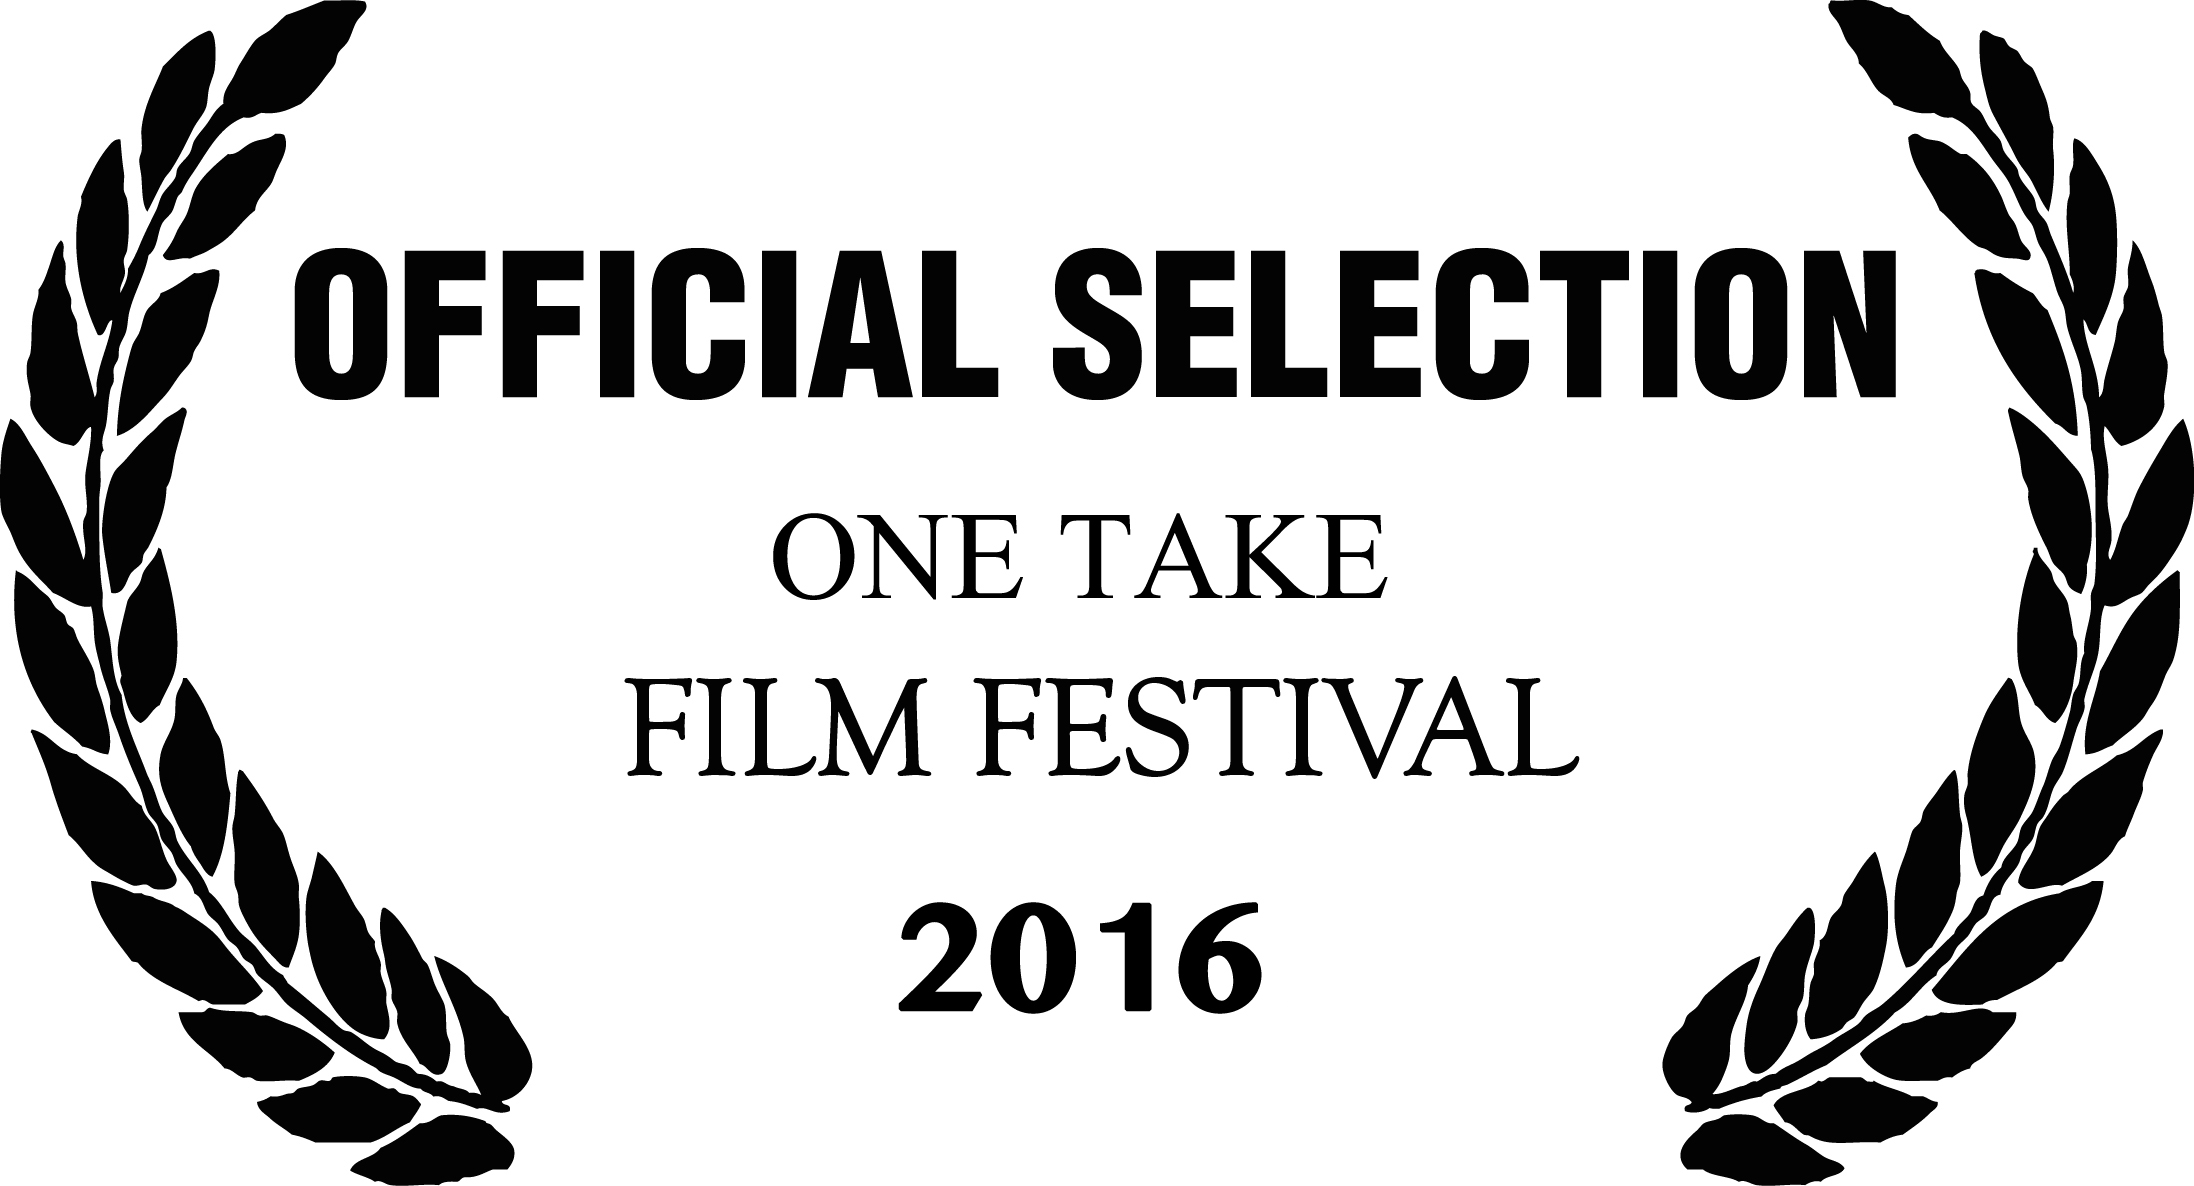 OFFICIAL SELECTION TO ONE TAKE FILM FESTIVAL IN CROATIA